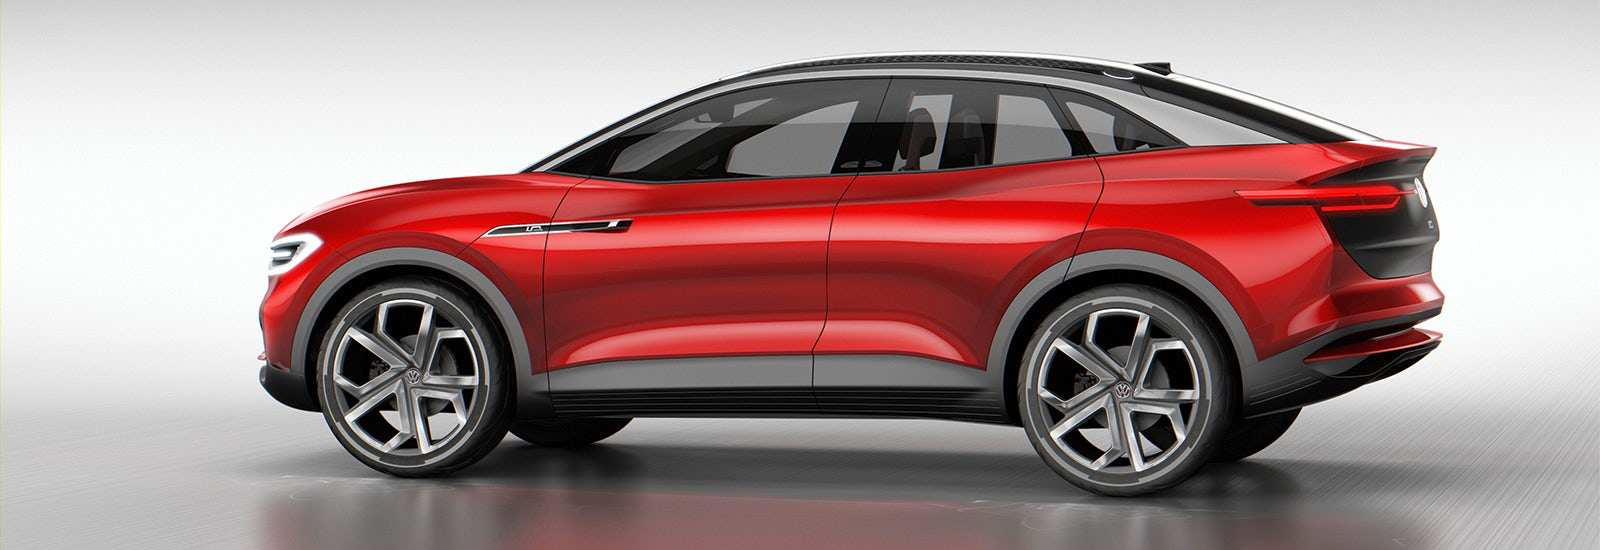 42 Best Review Renault Usa 2020 Performance and New Engine with Renault Usa 2020